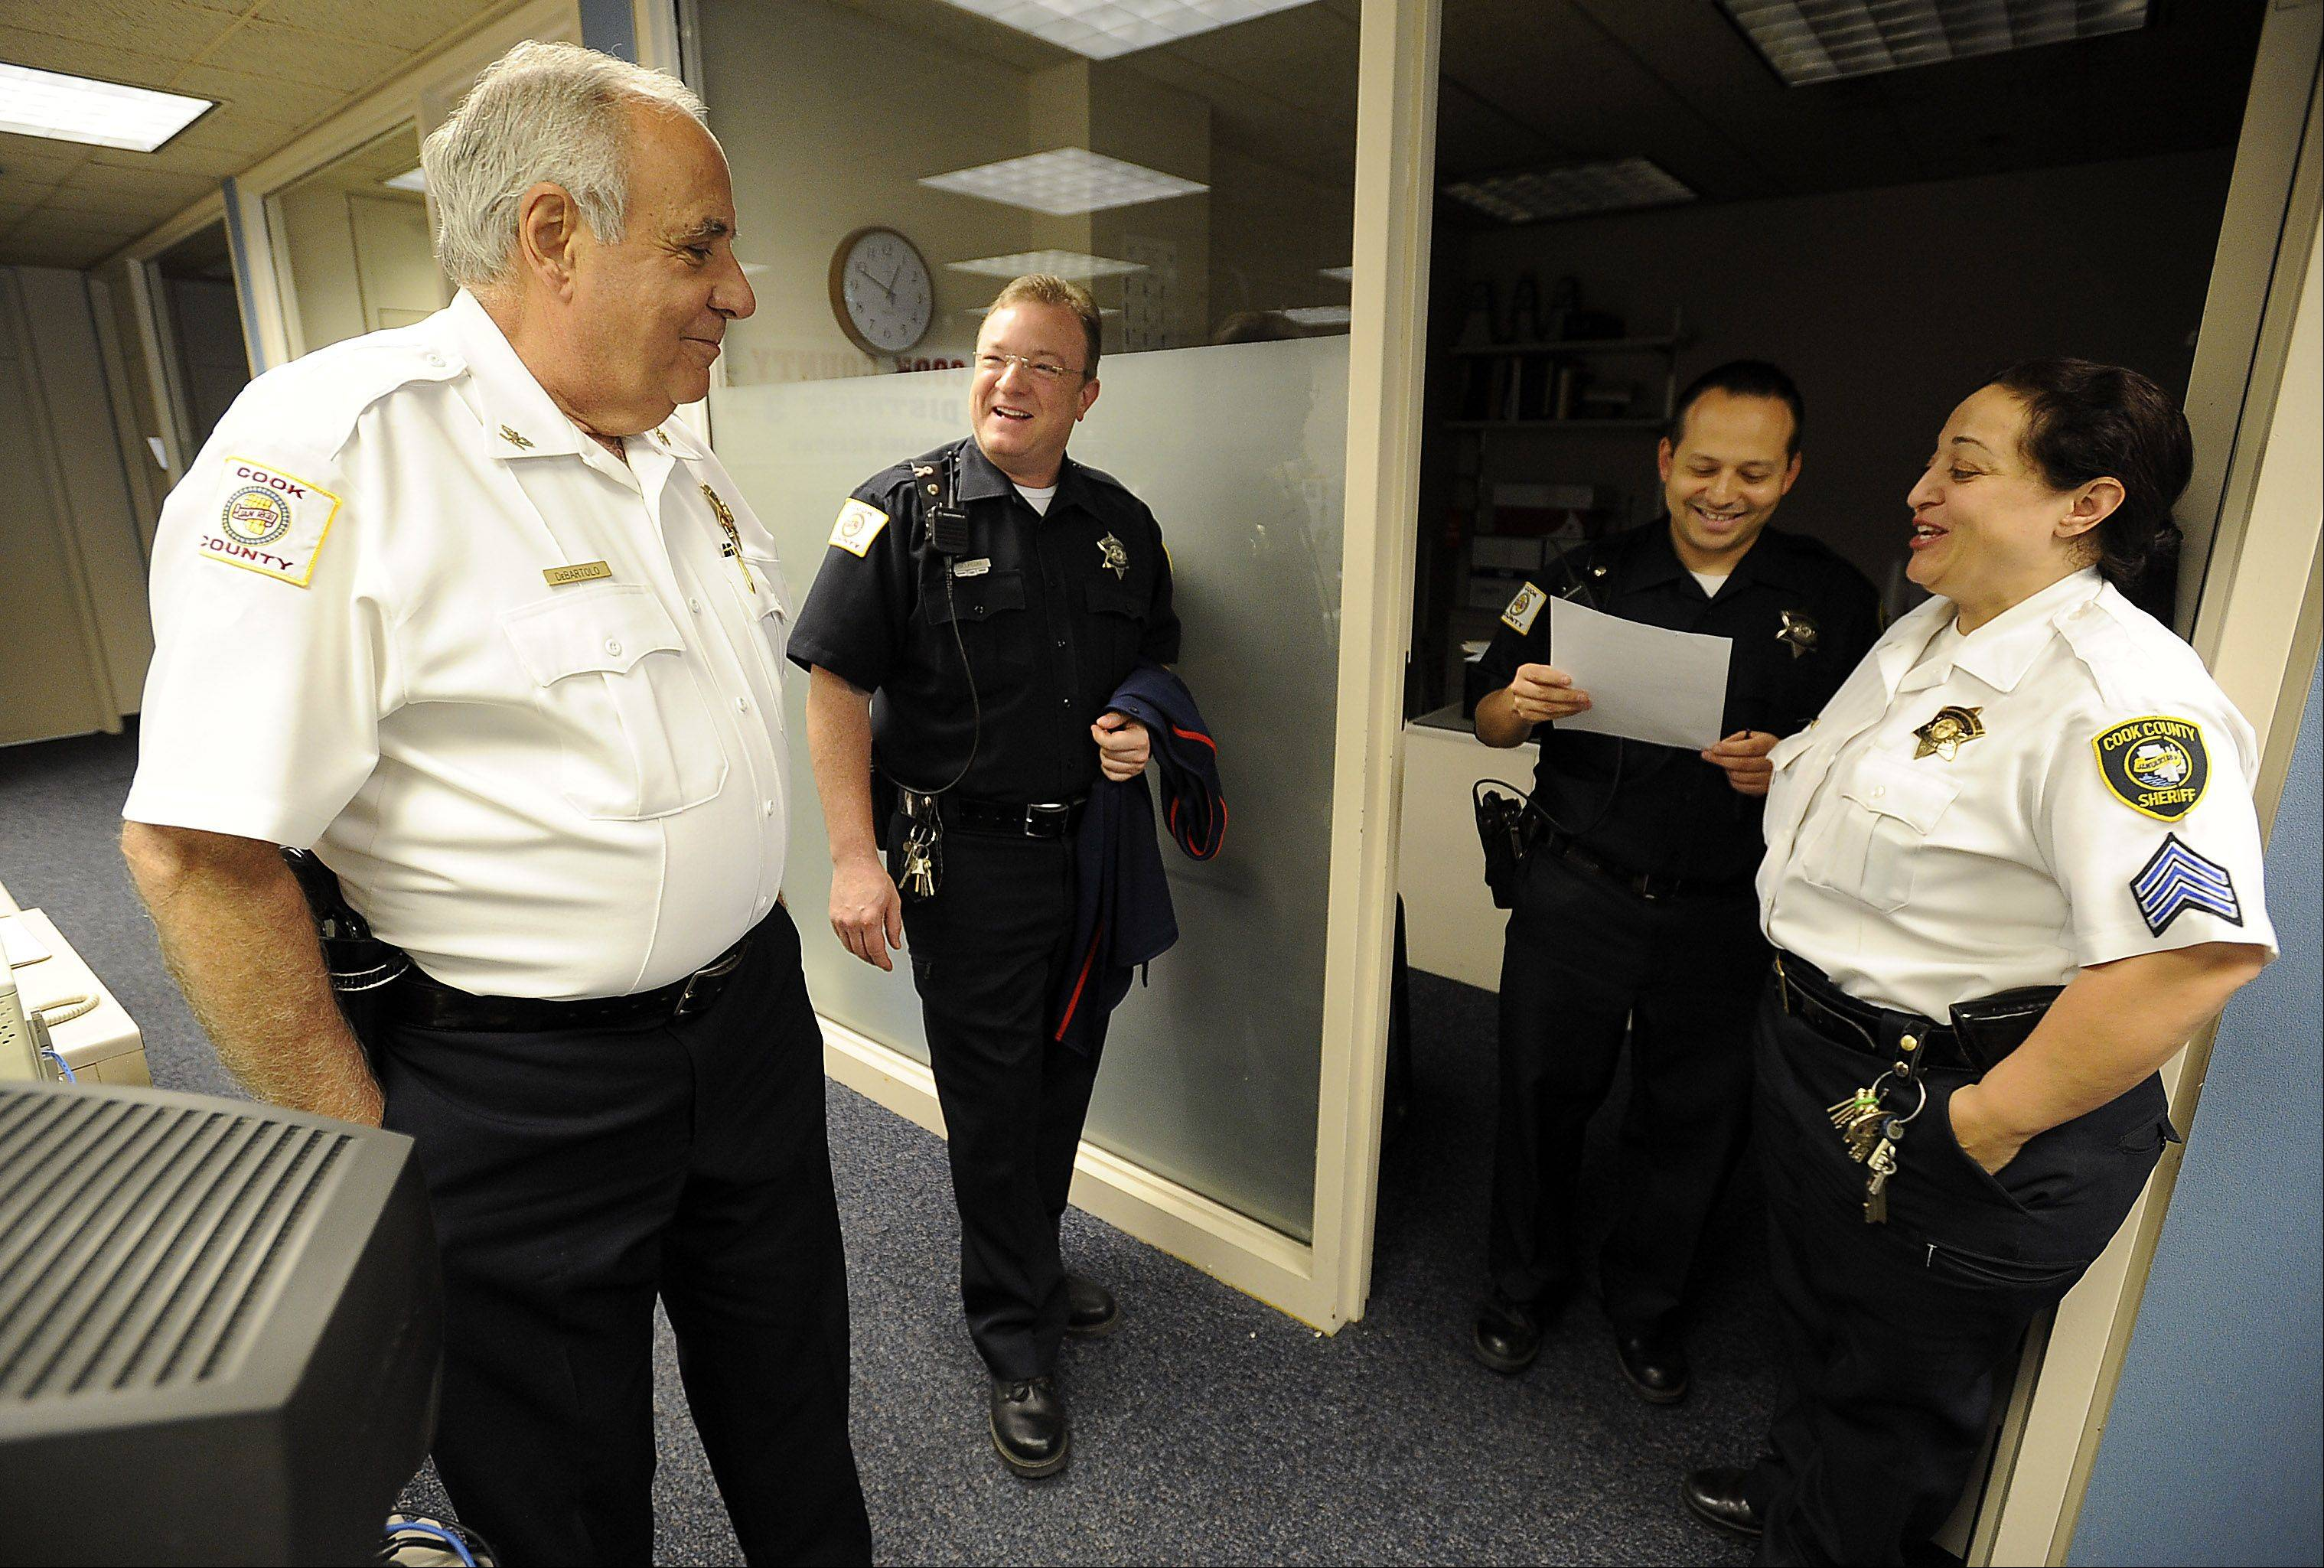 A legend in the Rolling Meadows courthouse, Chief Ralph DeBartolo of the Cook County Sheriff's Department draws praise from his deputies. The popular chief, who turns 79 Monday, will celebrate his 55th anniversary in law enforcement at the end of the month and has no plans to retire.